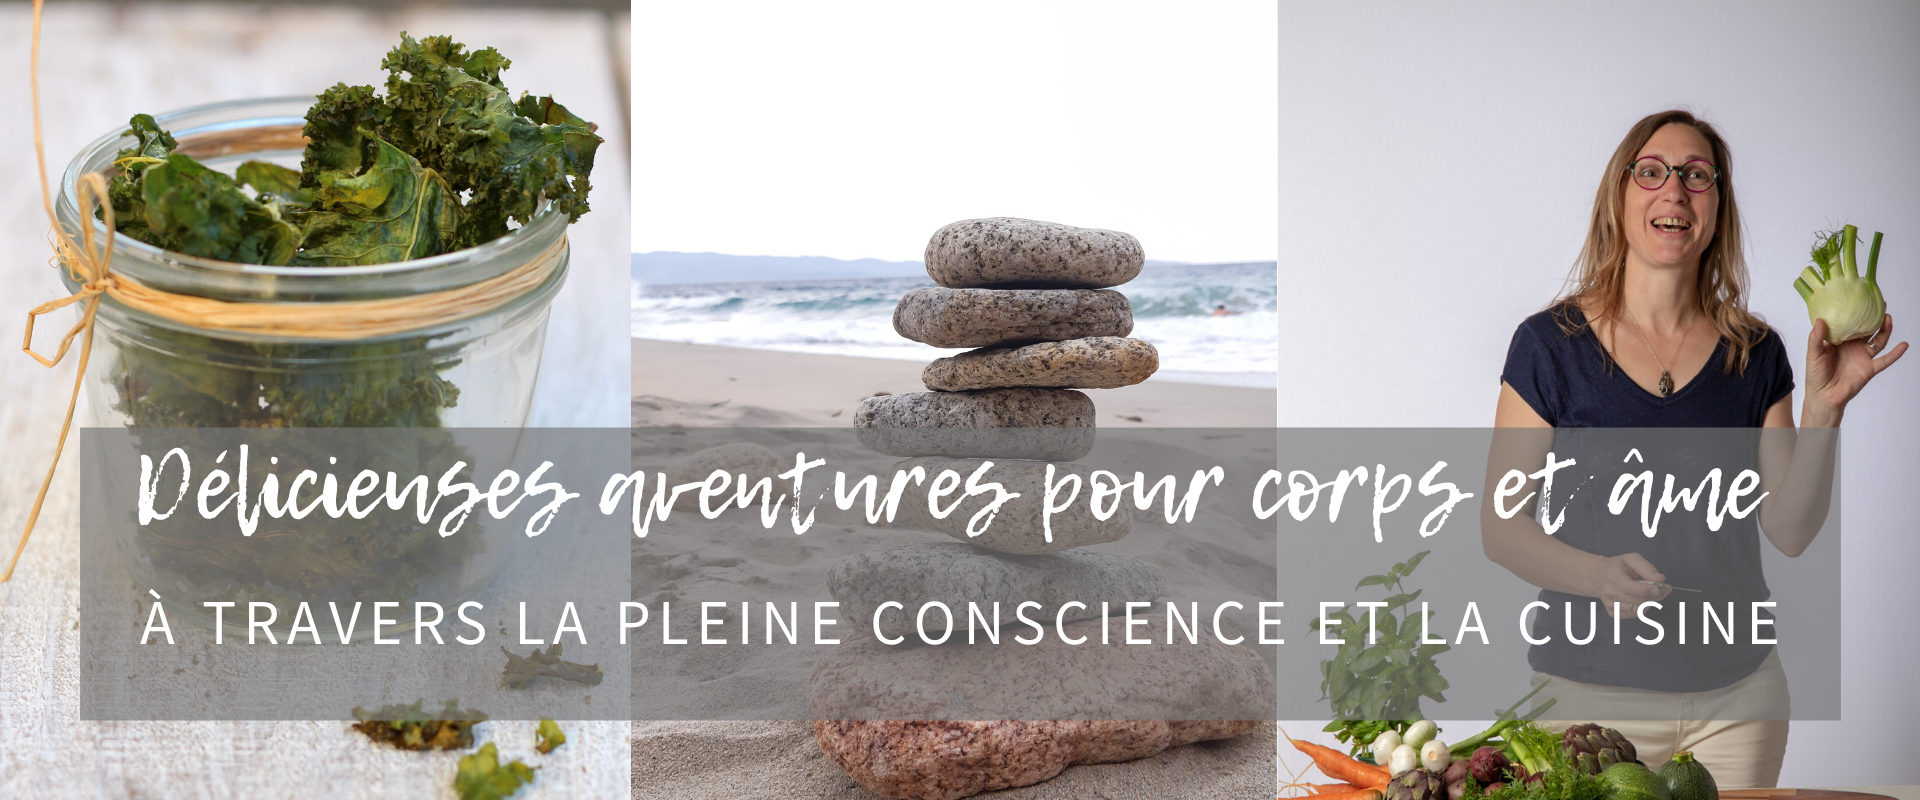 https://www.alimentation-integrative.fr/wp-content/uploads/2019/12/v3.png